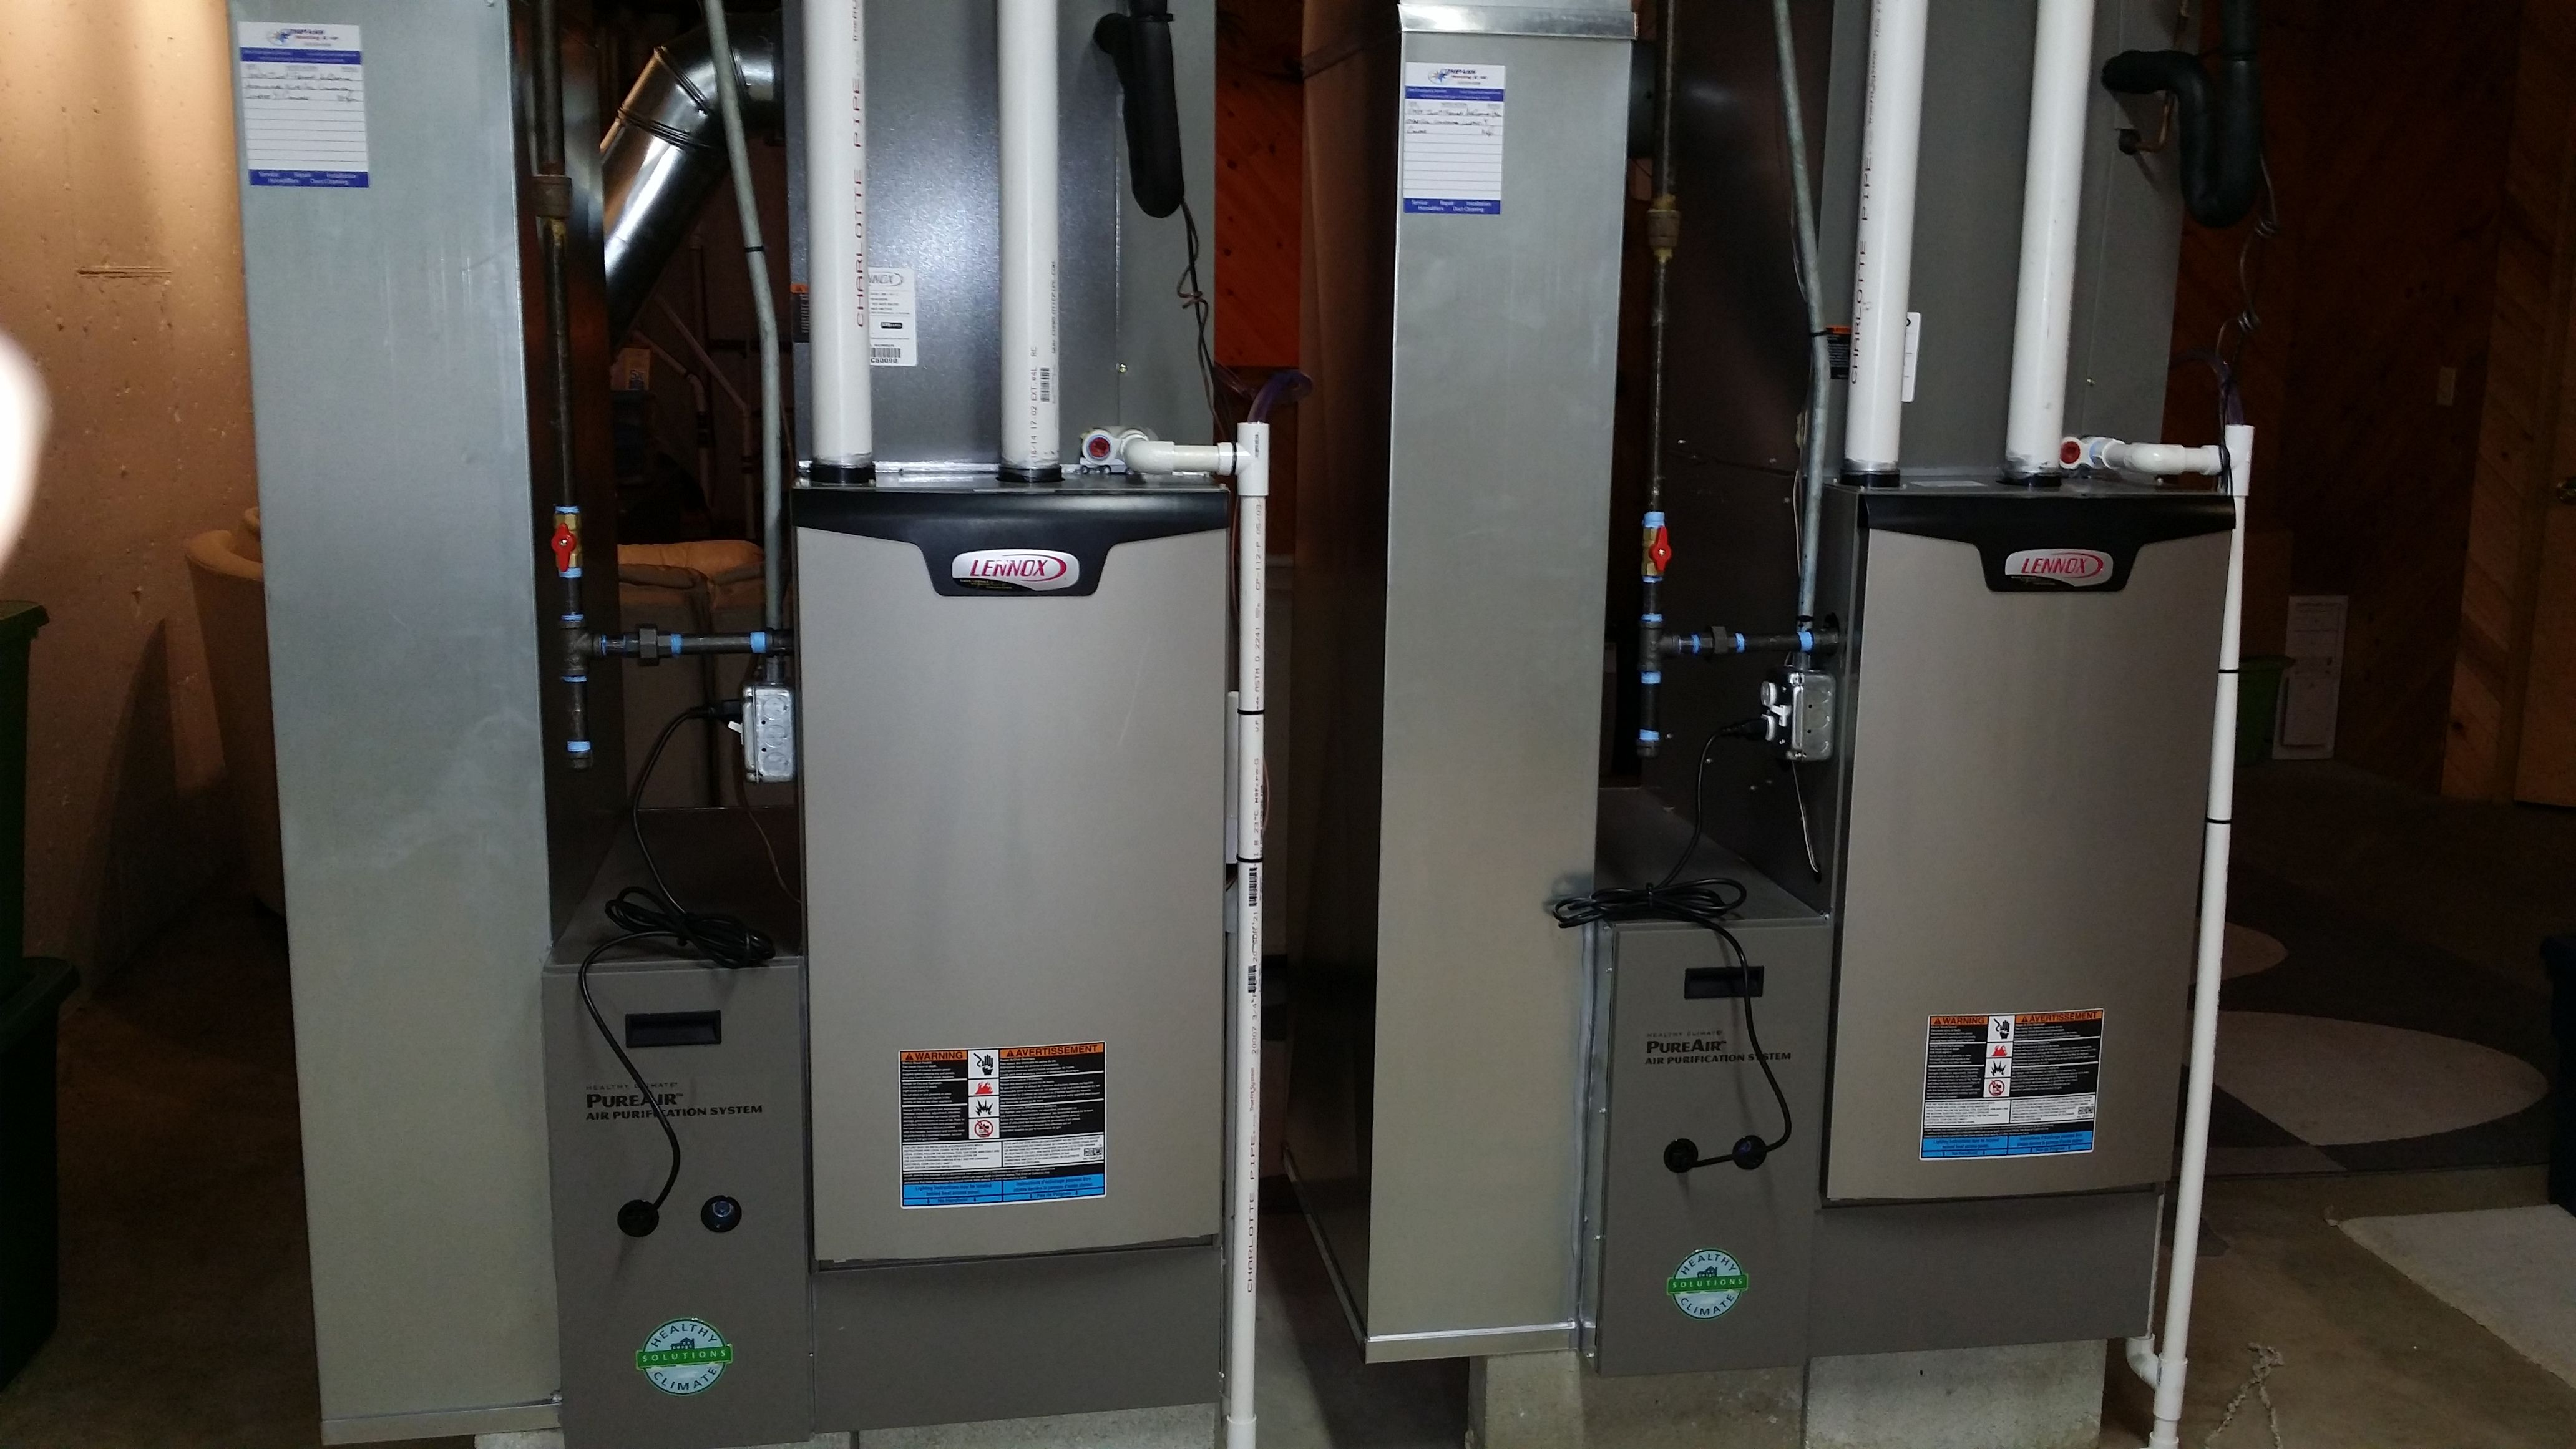 A Pair Of Modulating 98 Efficient Lennox Furnaces With Pureair